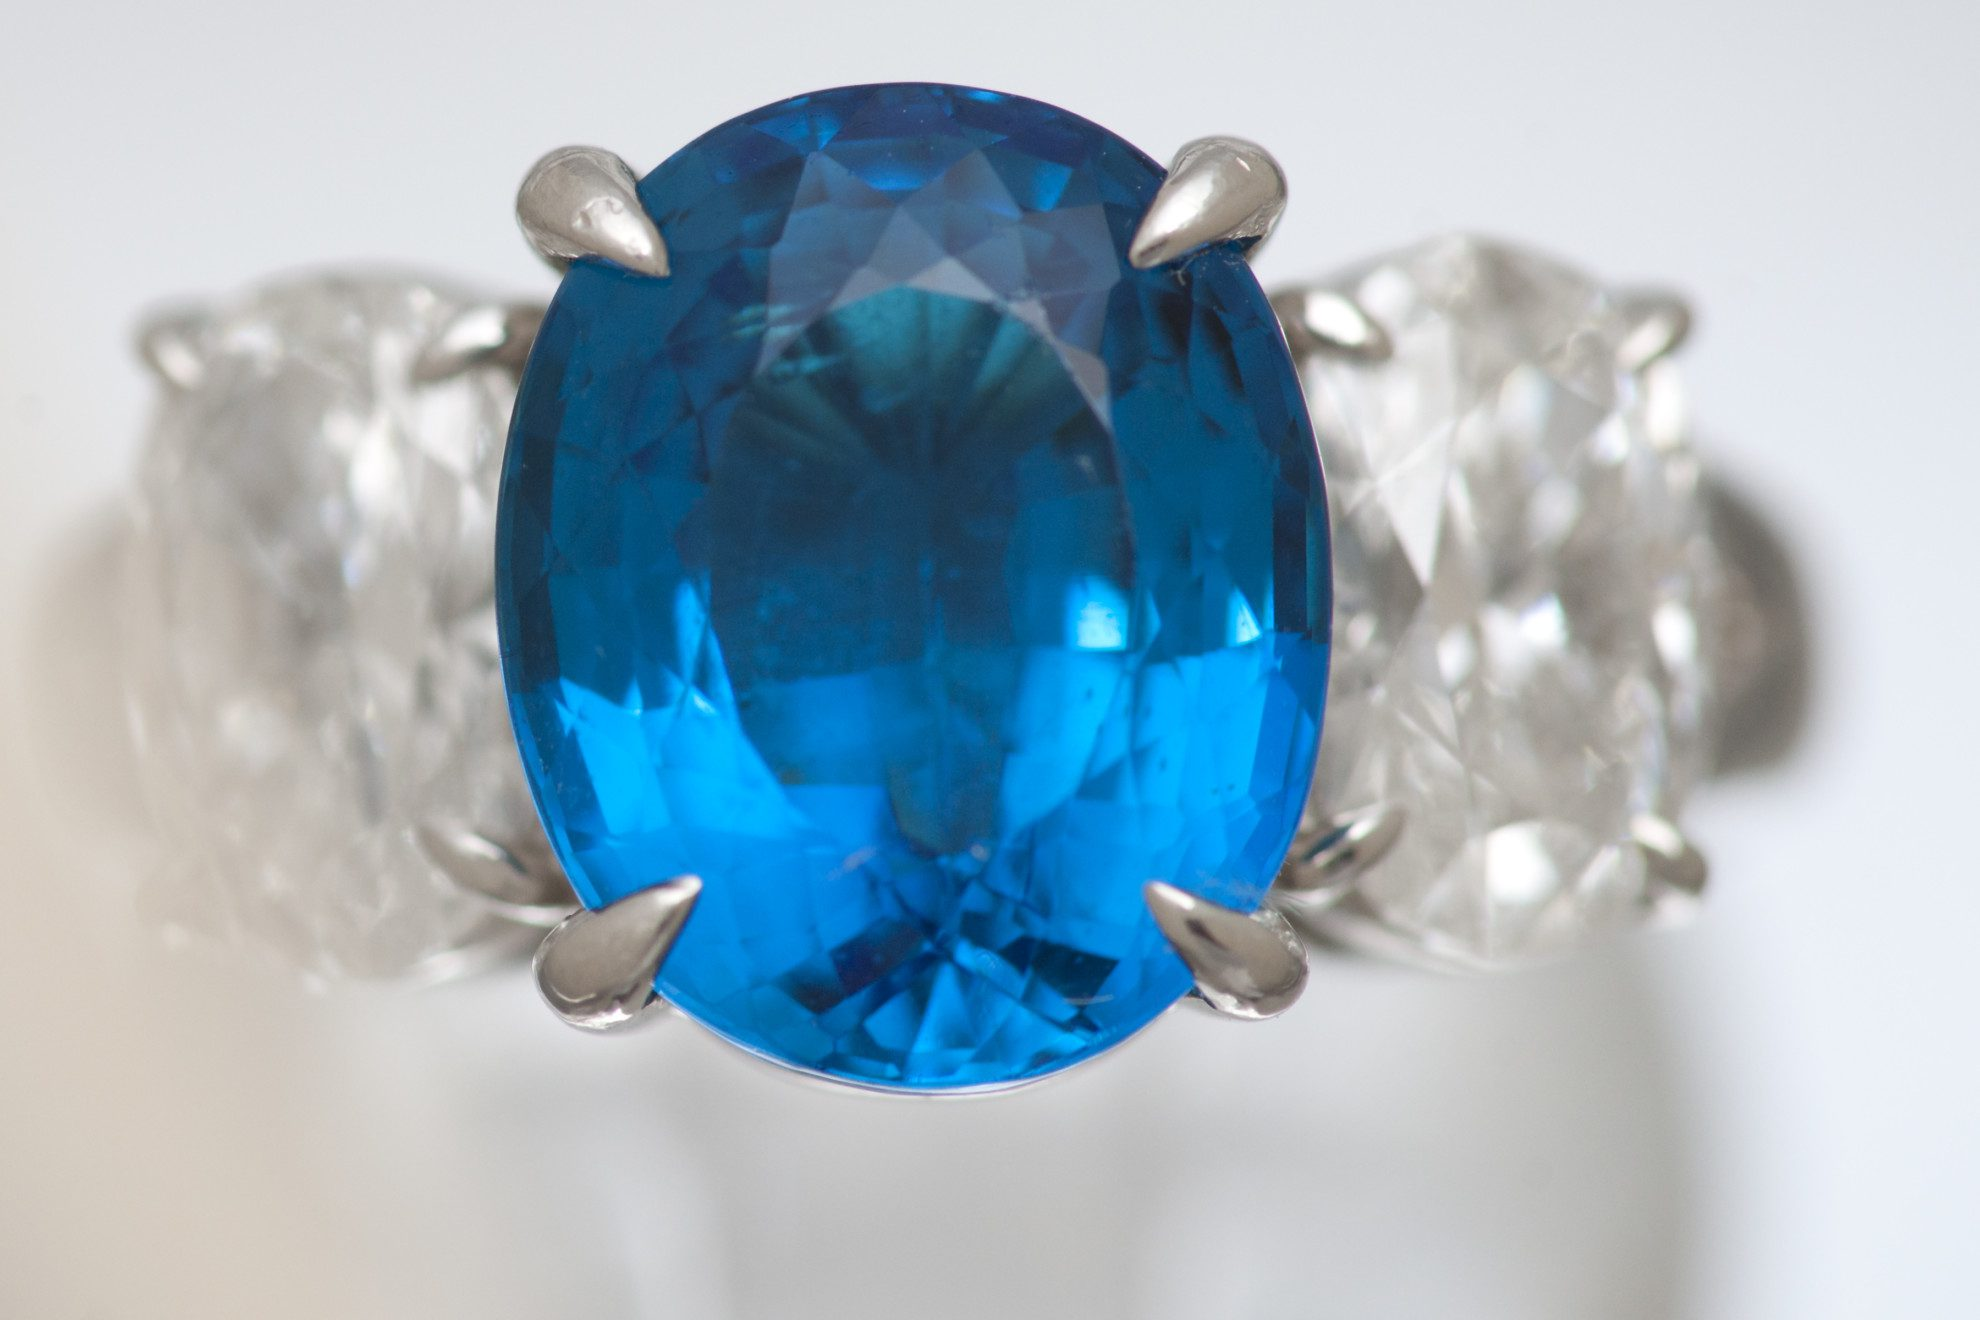 blue this gemstones black and its ten article copper gem rare paraiba exceptional tanzanite up high than diamond content rarer ring to centerstone bright lives with society hype creates a tourmaline color international